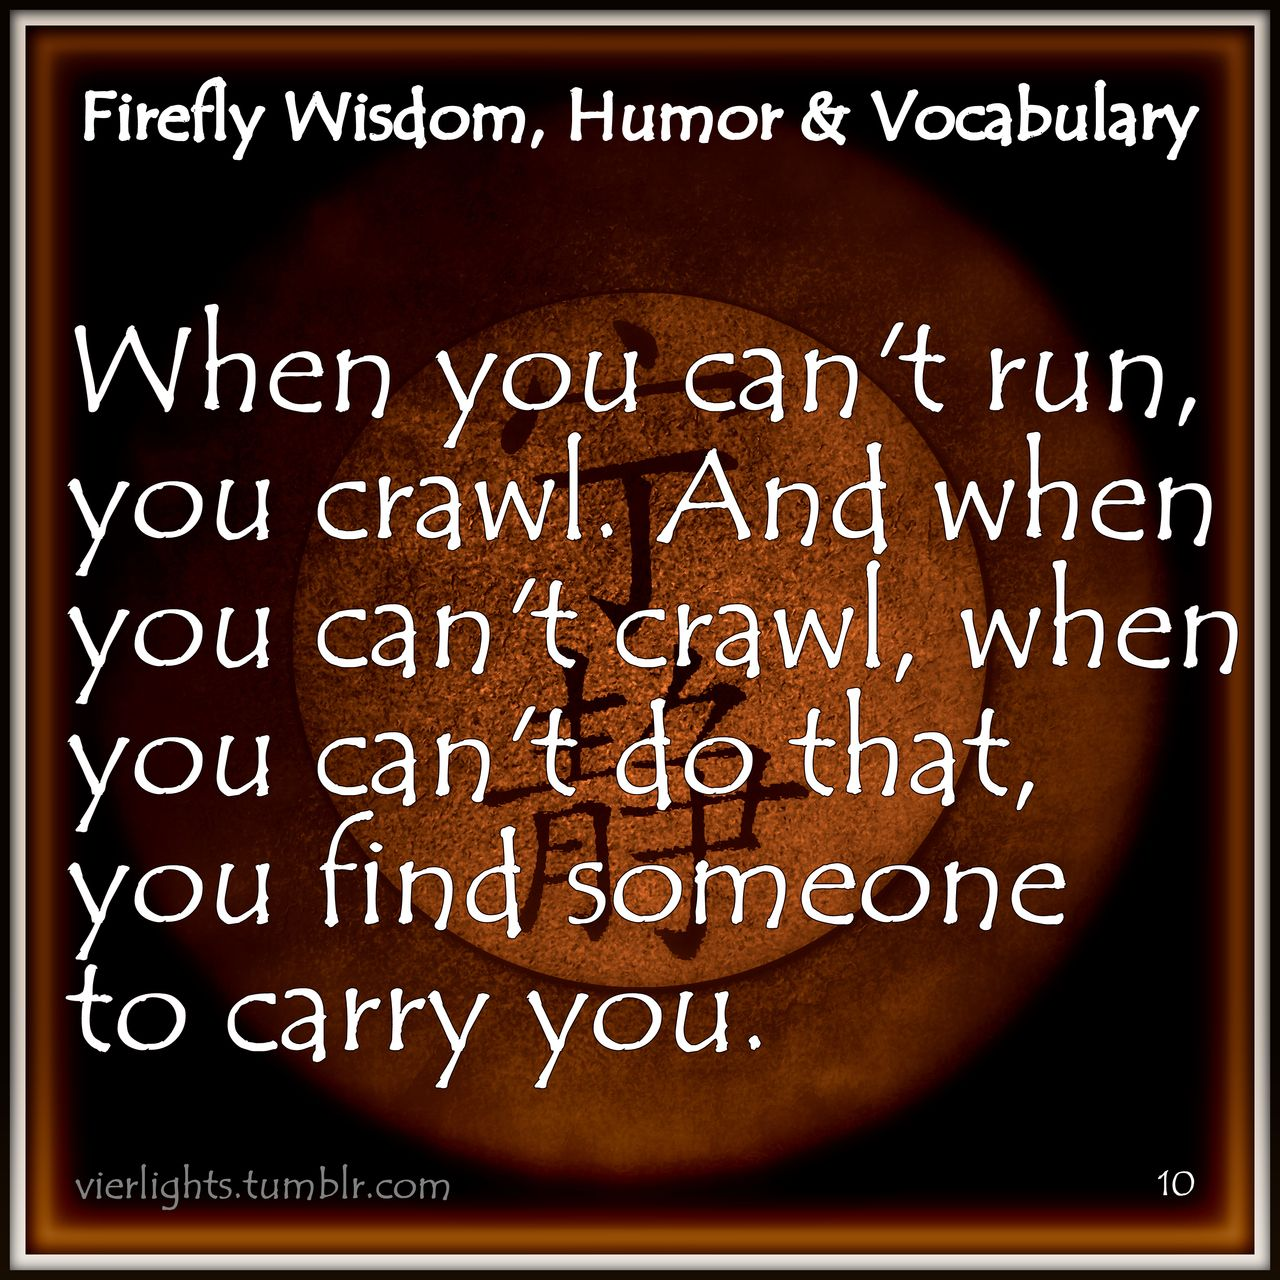 Serenity Movie Quotes: When You Can't Run, You Crawl... #firefly Always Move